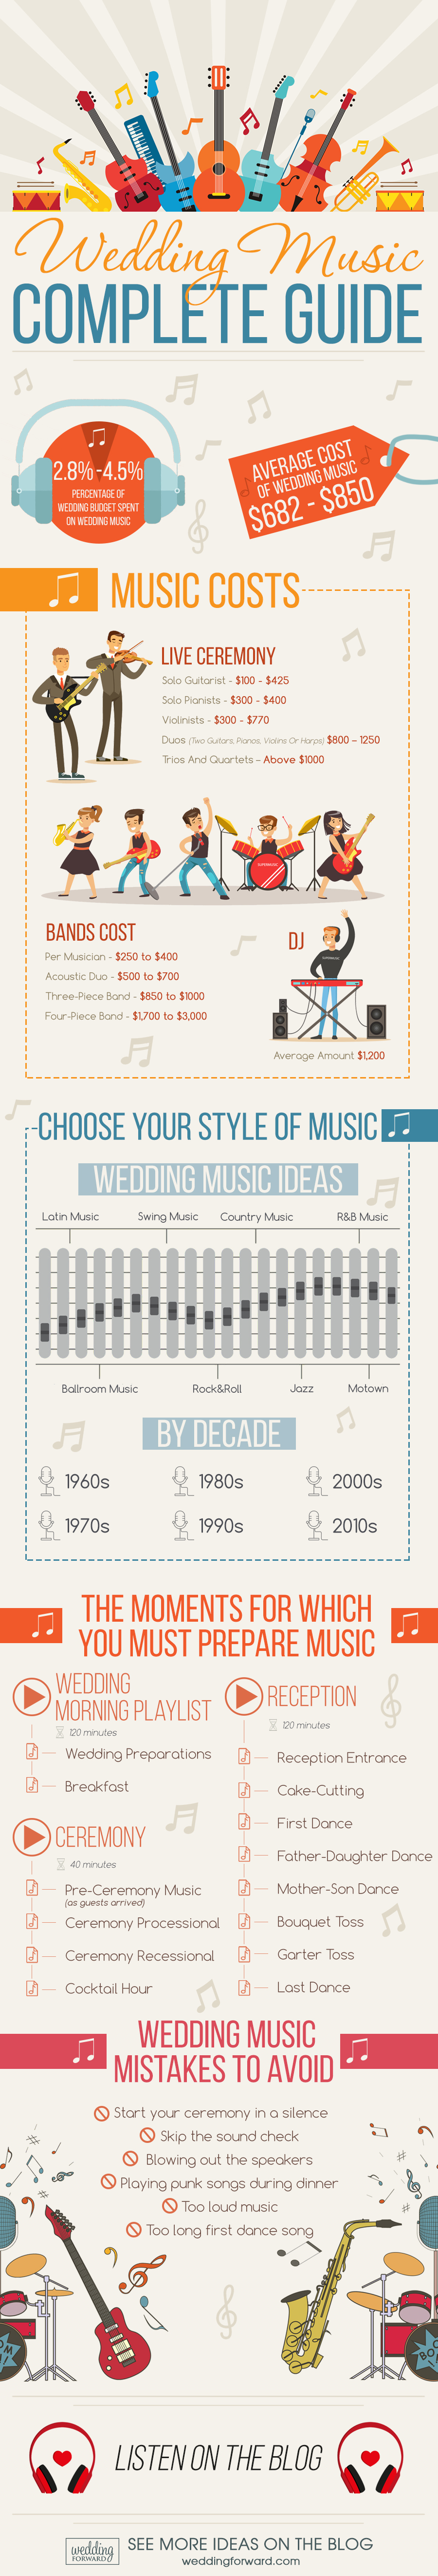 Wedding Music - Wedding Planning Timeline-Checklist